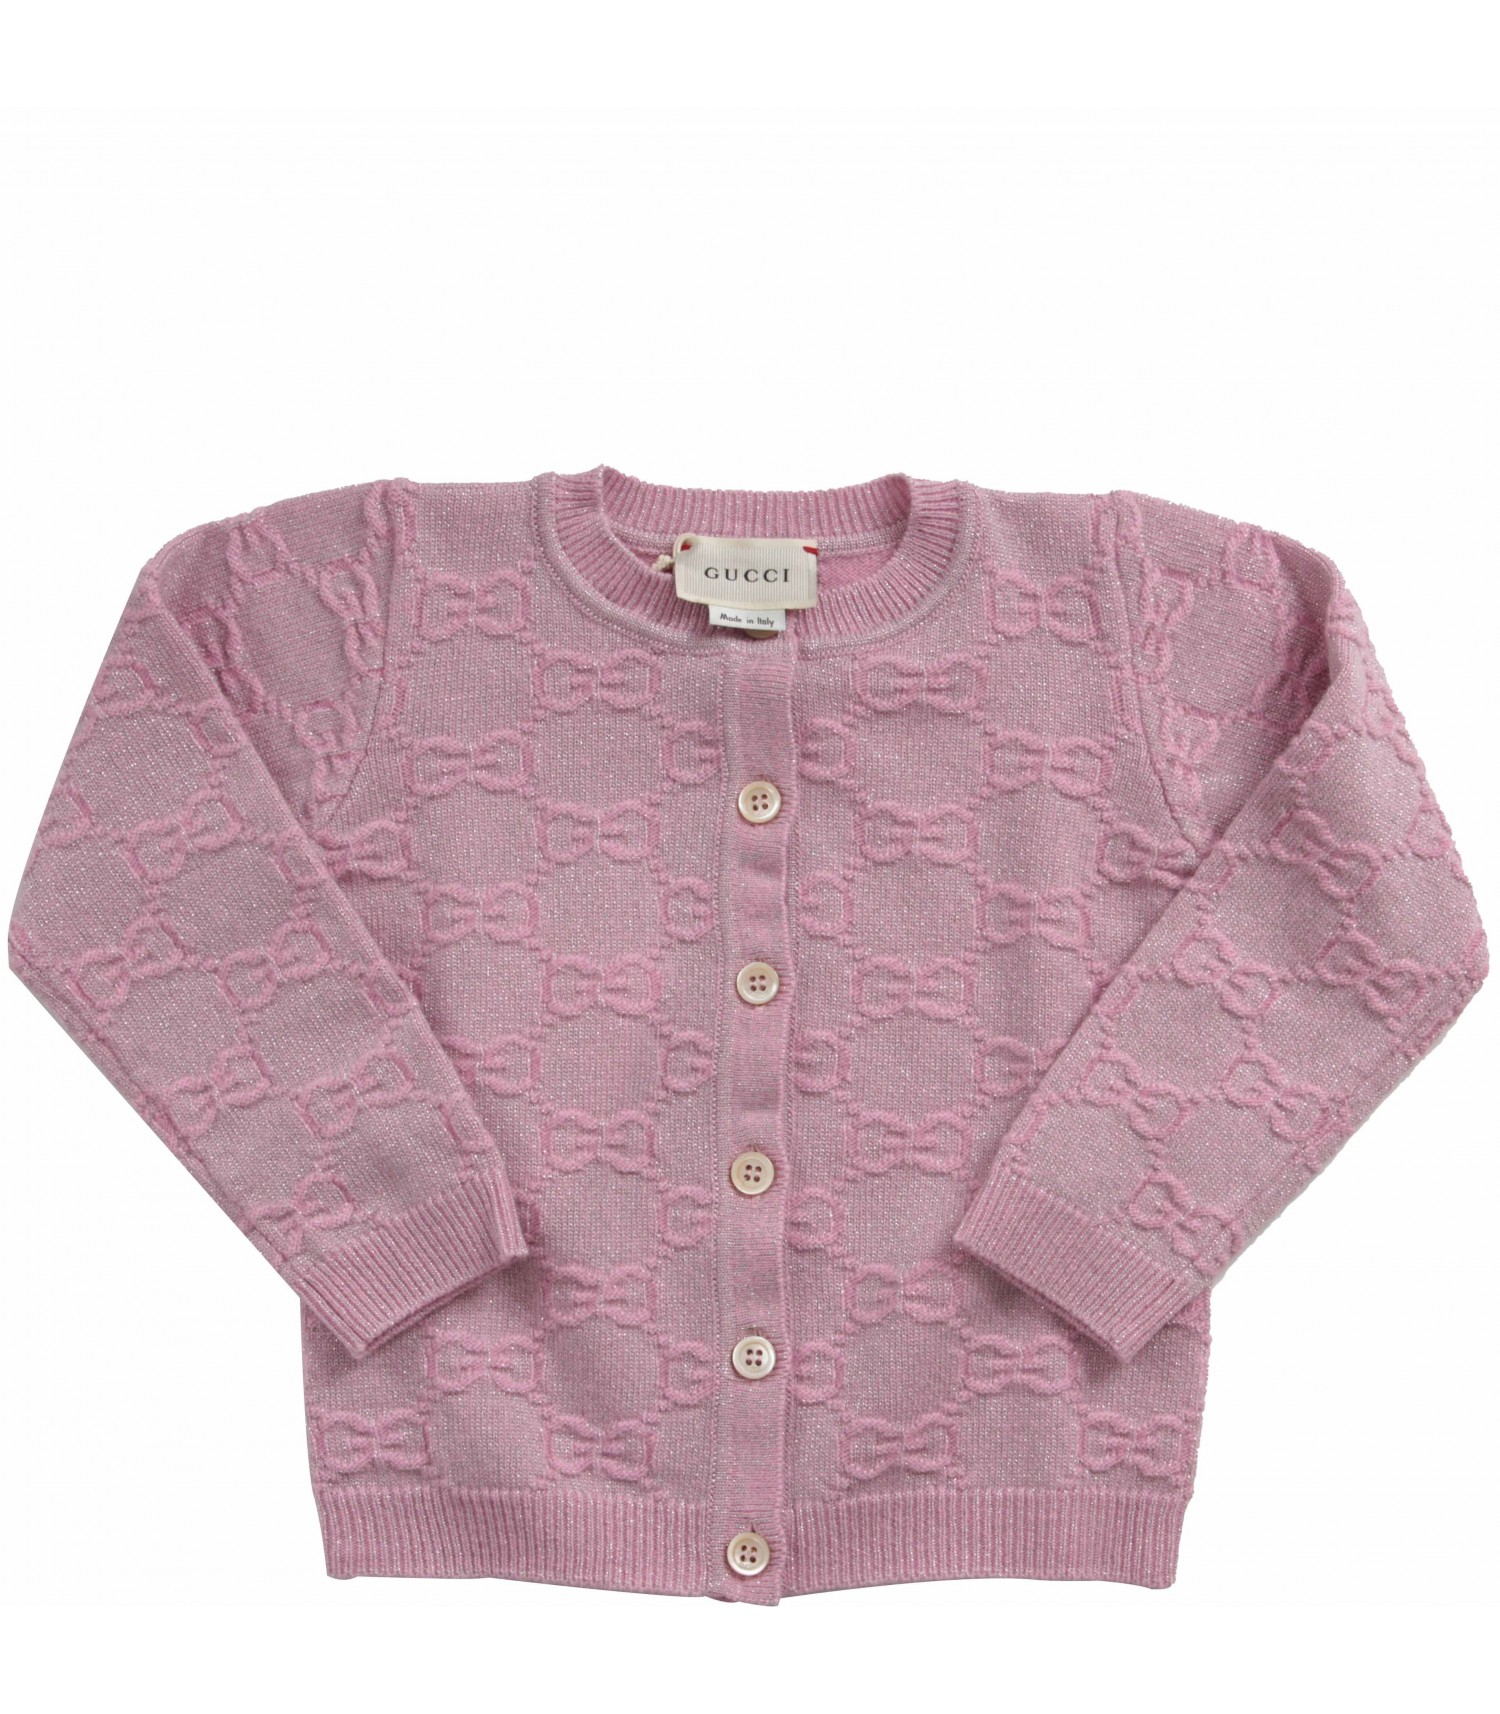 Gucci Kids Pink babygirl cardigan with double GG